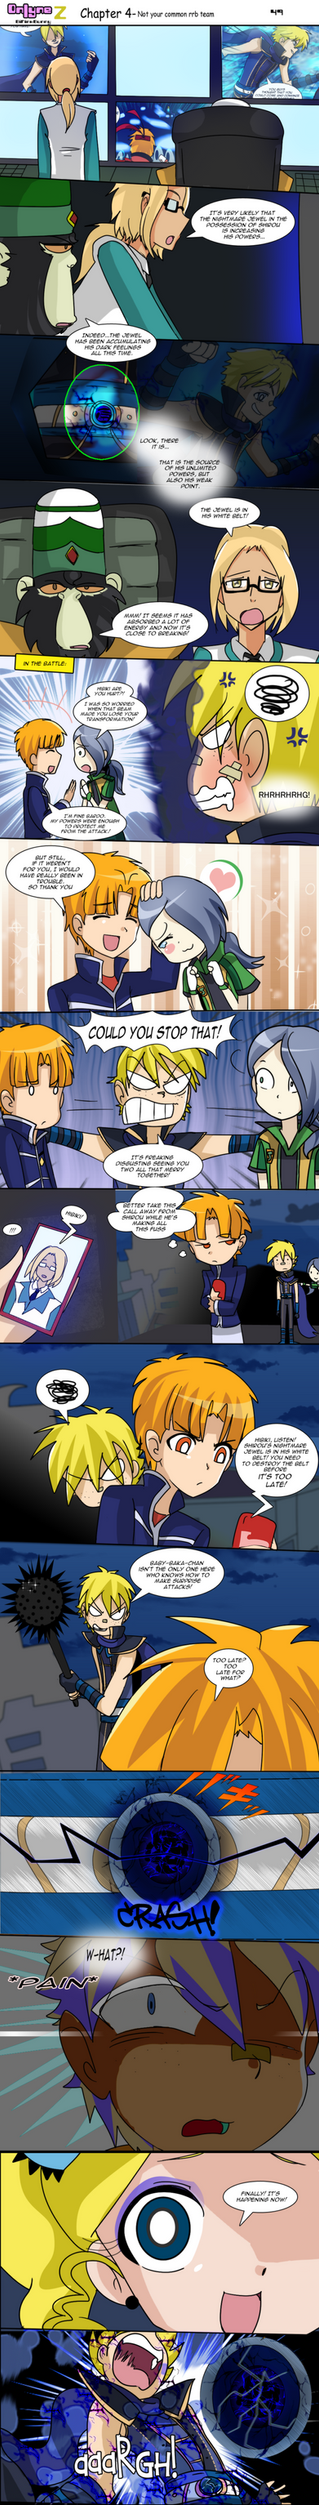 Onlyne Z Chap.4- Not your common rrb team 49 by BiPinkBunny